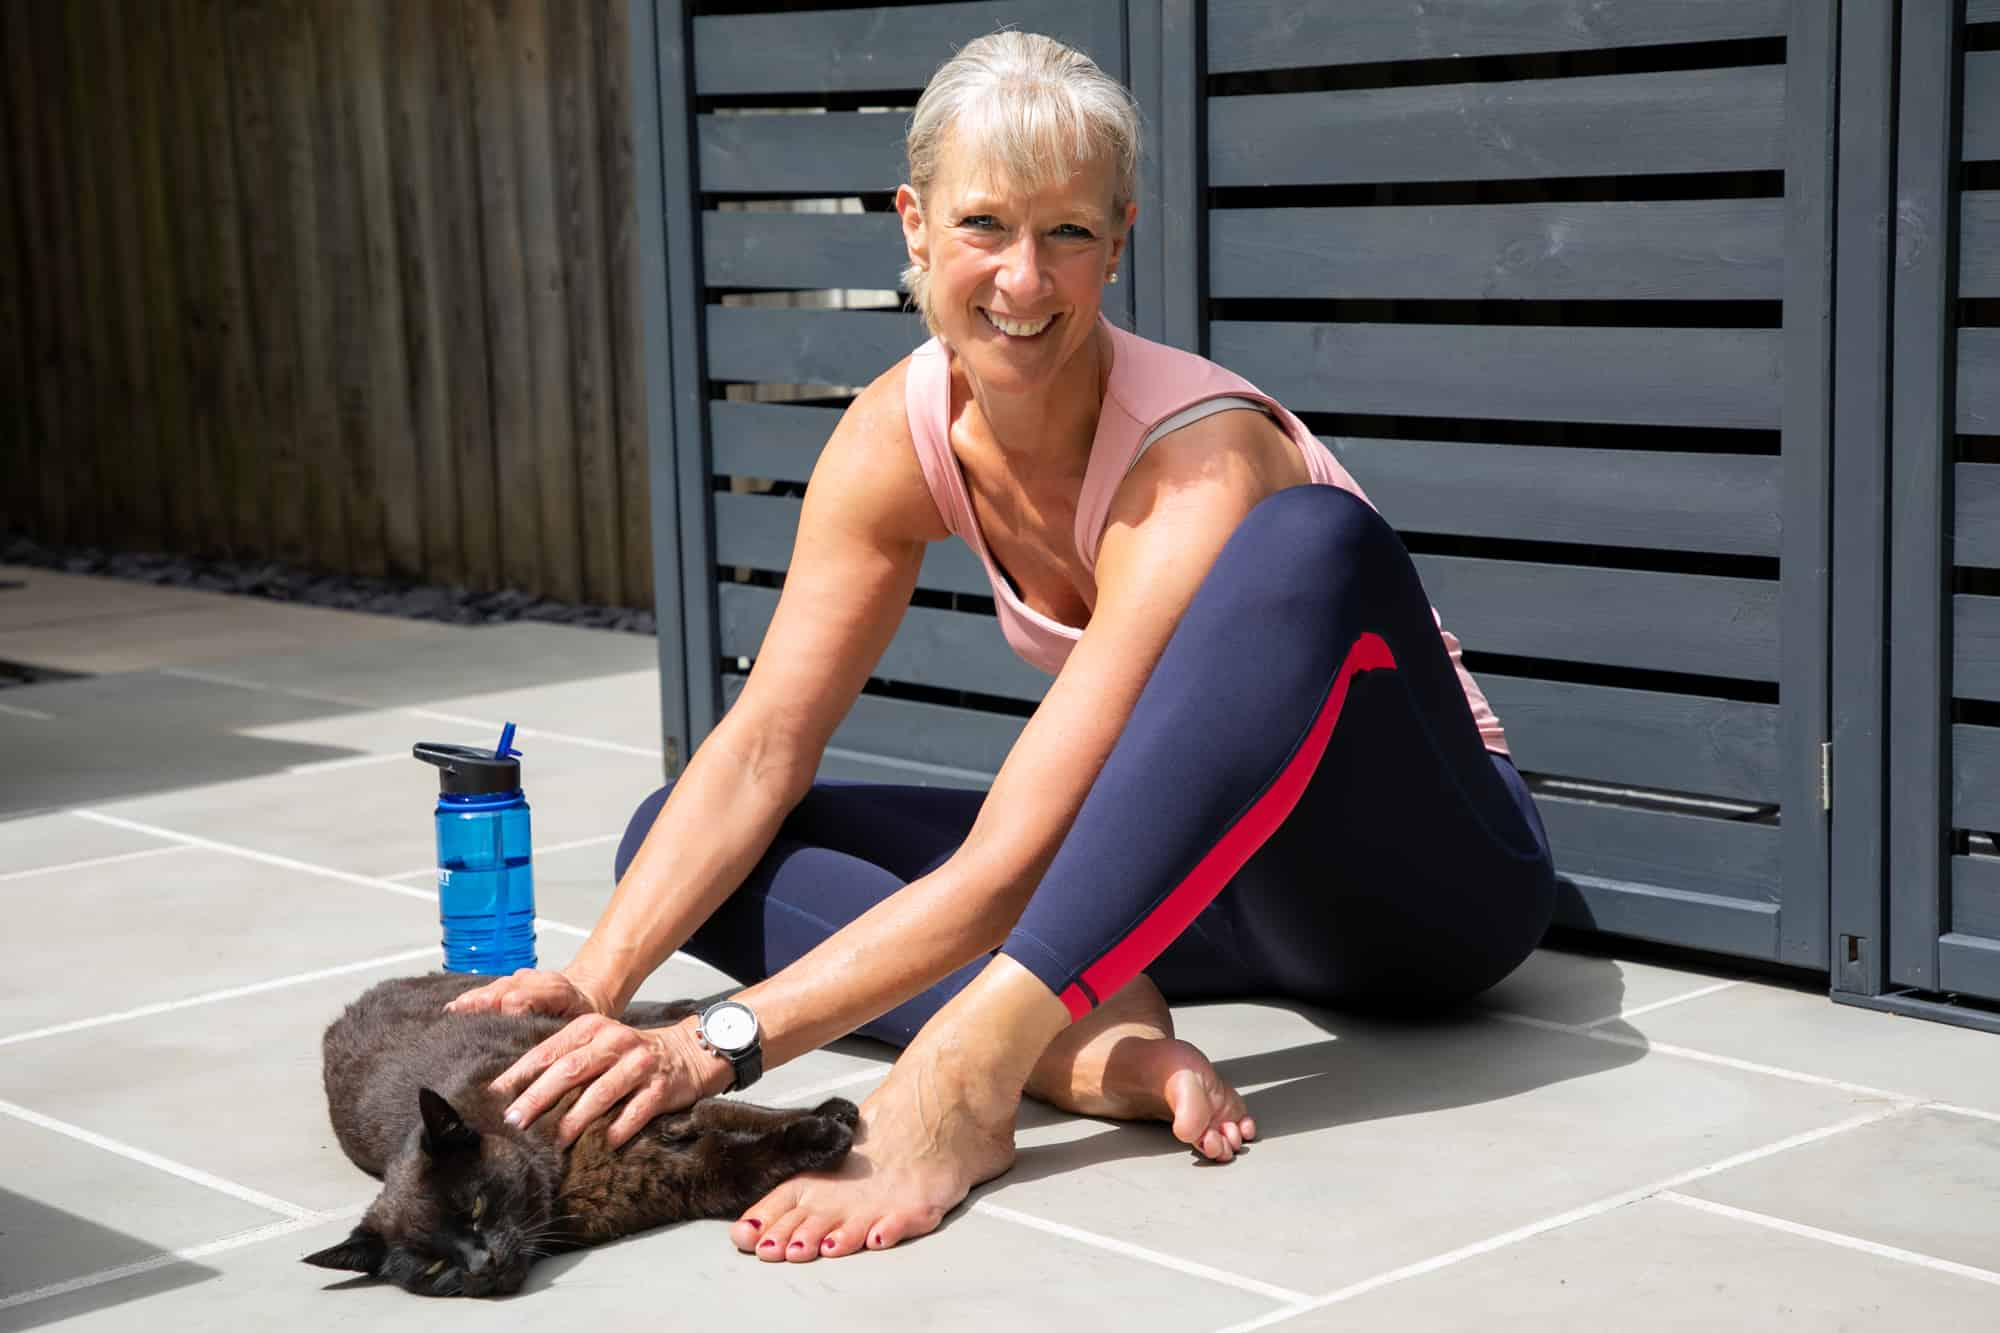 Personal Trainer Carola Becker sitting on the floor with black cat